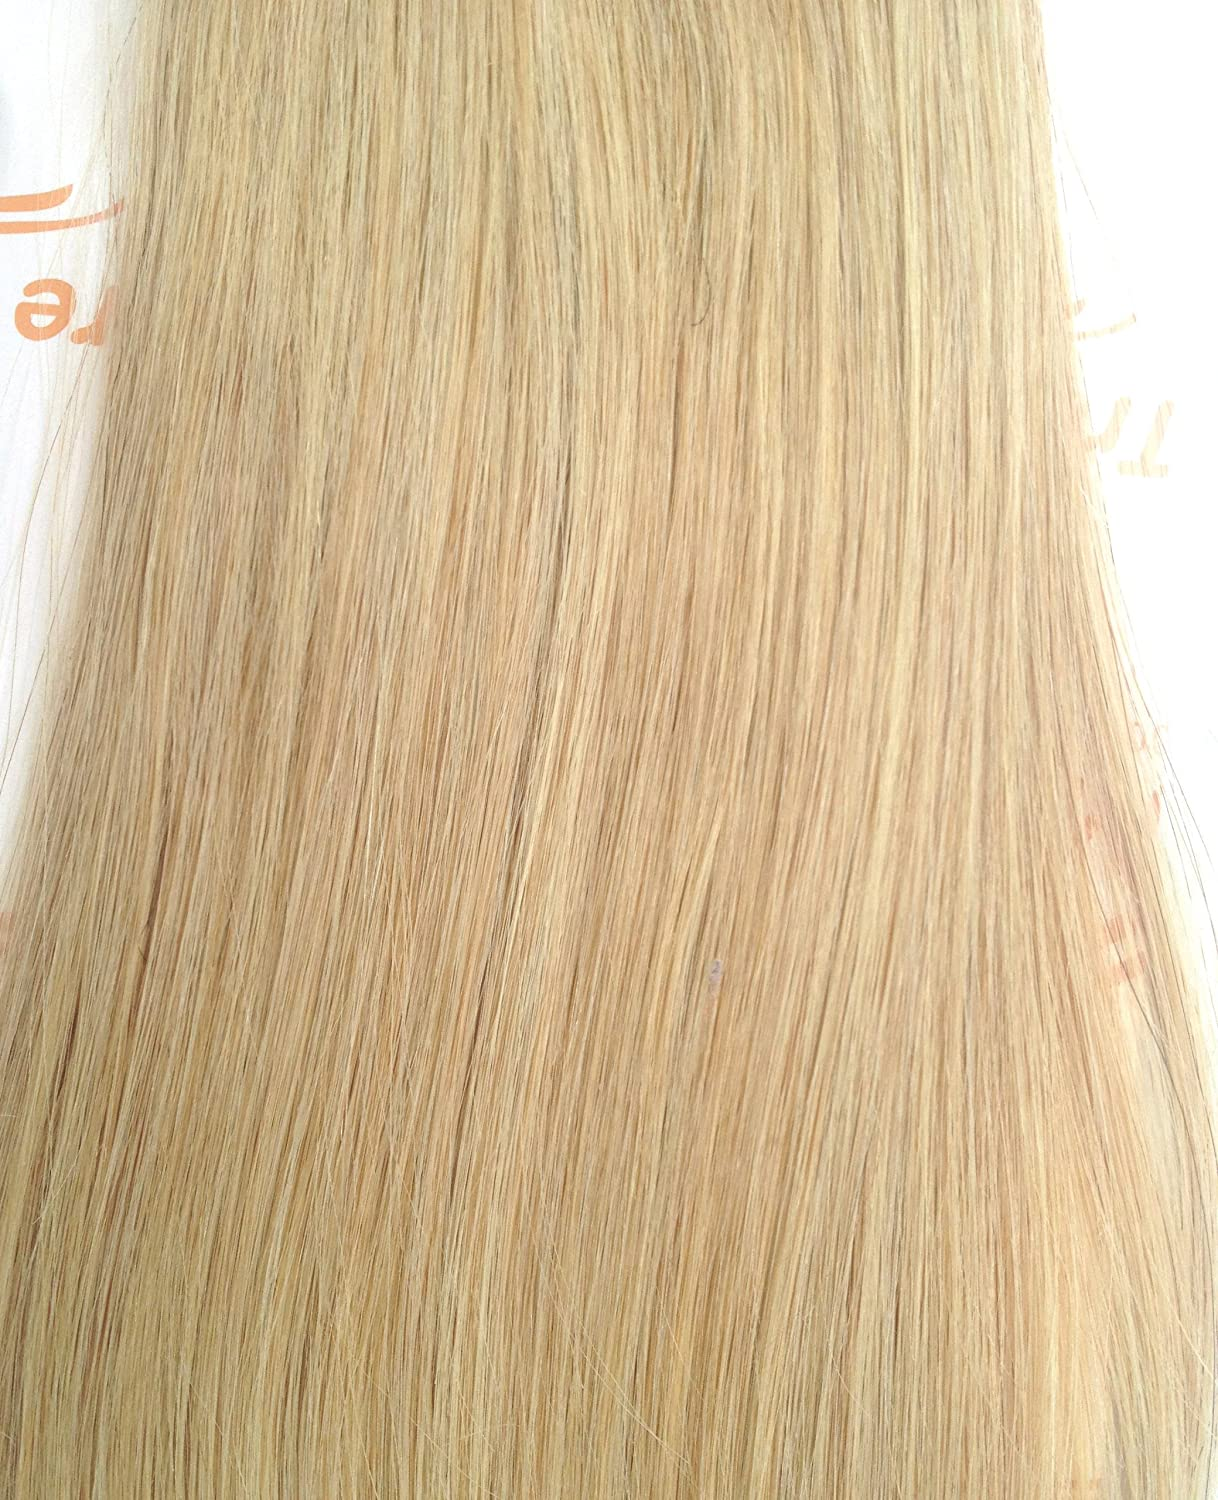 Amazon tressmatch 20 22 remy remi human hair clip in amazon tressmatch 20 22 remy remi human hair clip in extensions thick to ends champagne blonde 22 9 pieces full head set set pmusecretfo Images